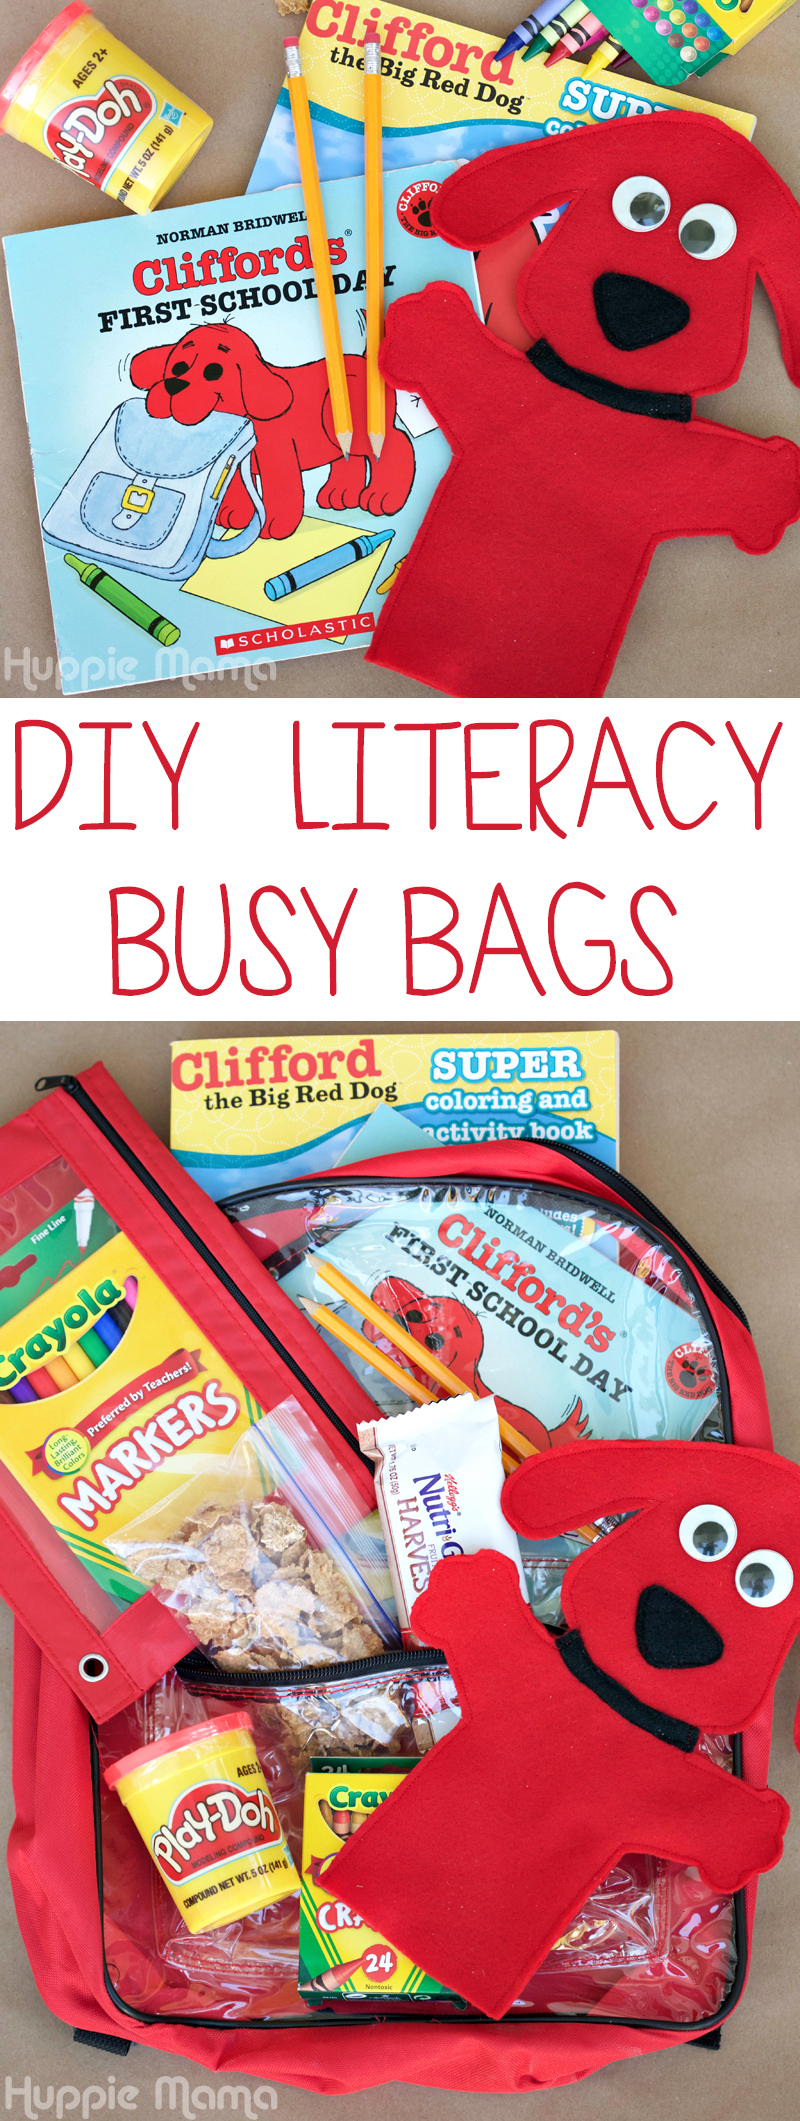 DIY Literacy Busy Bags